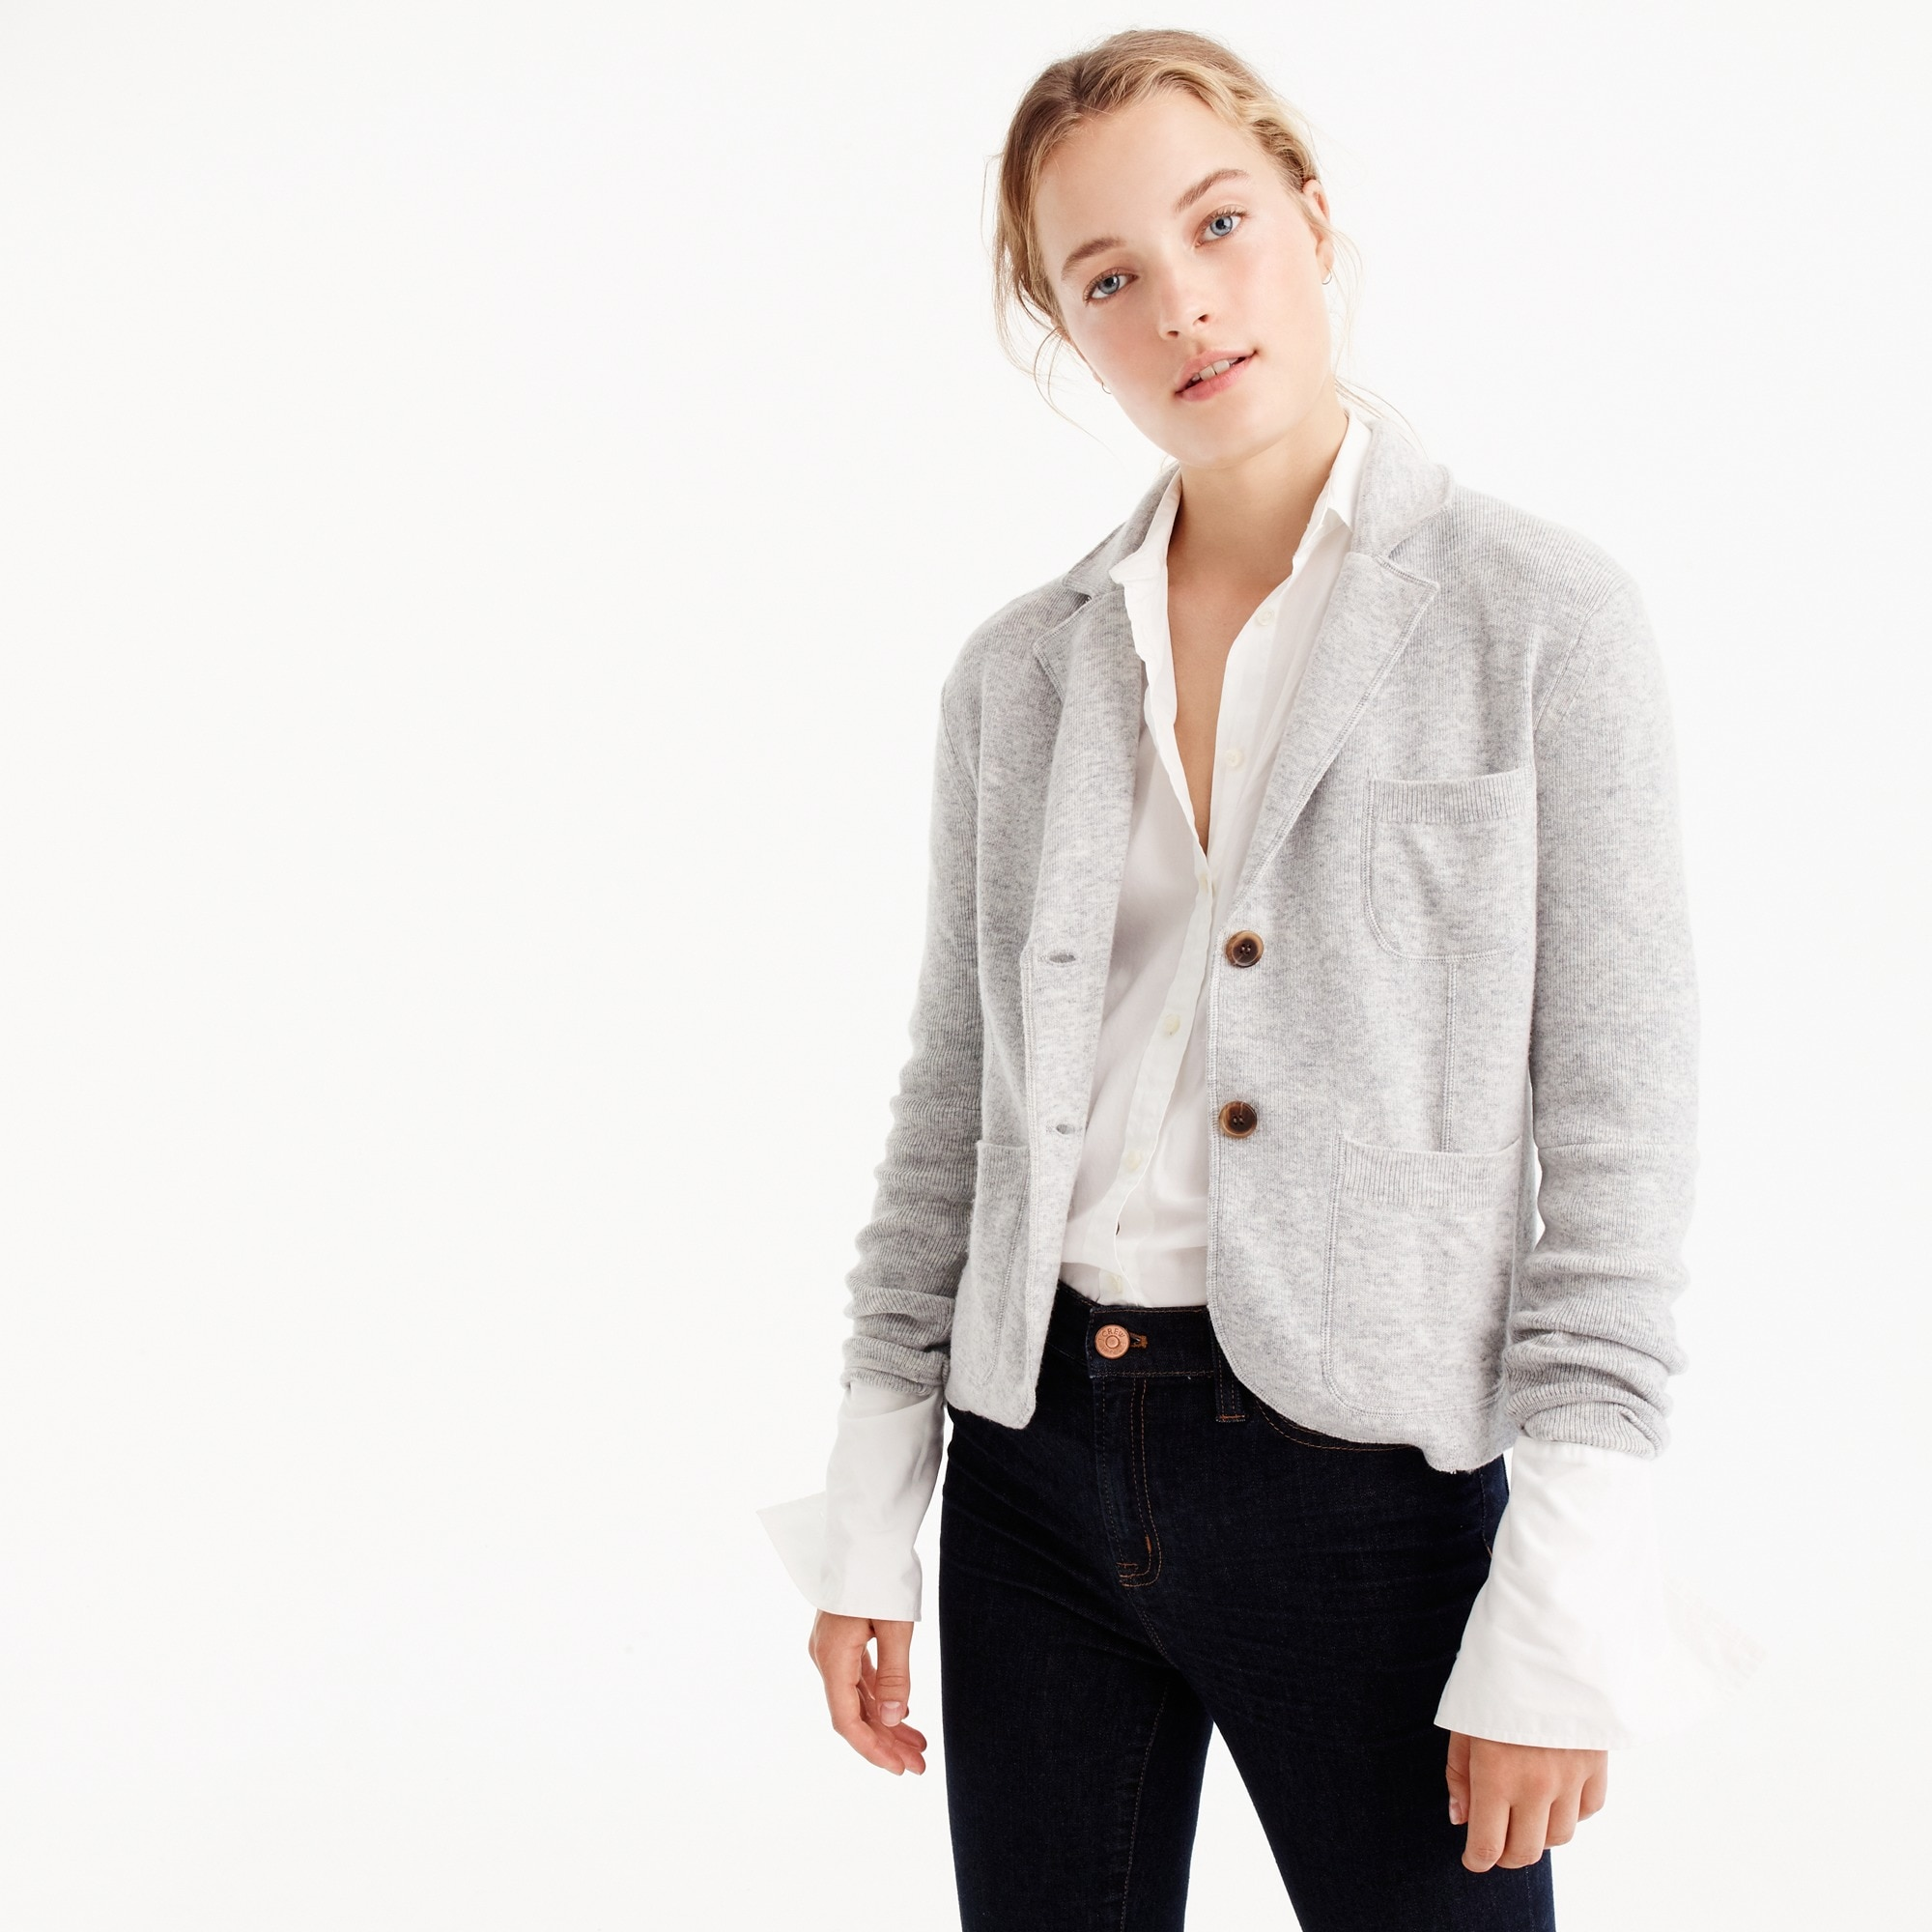 Cropped sweater-blazer